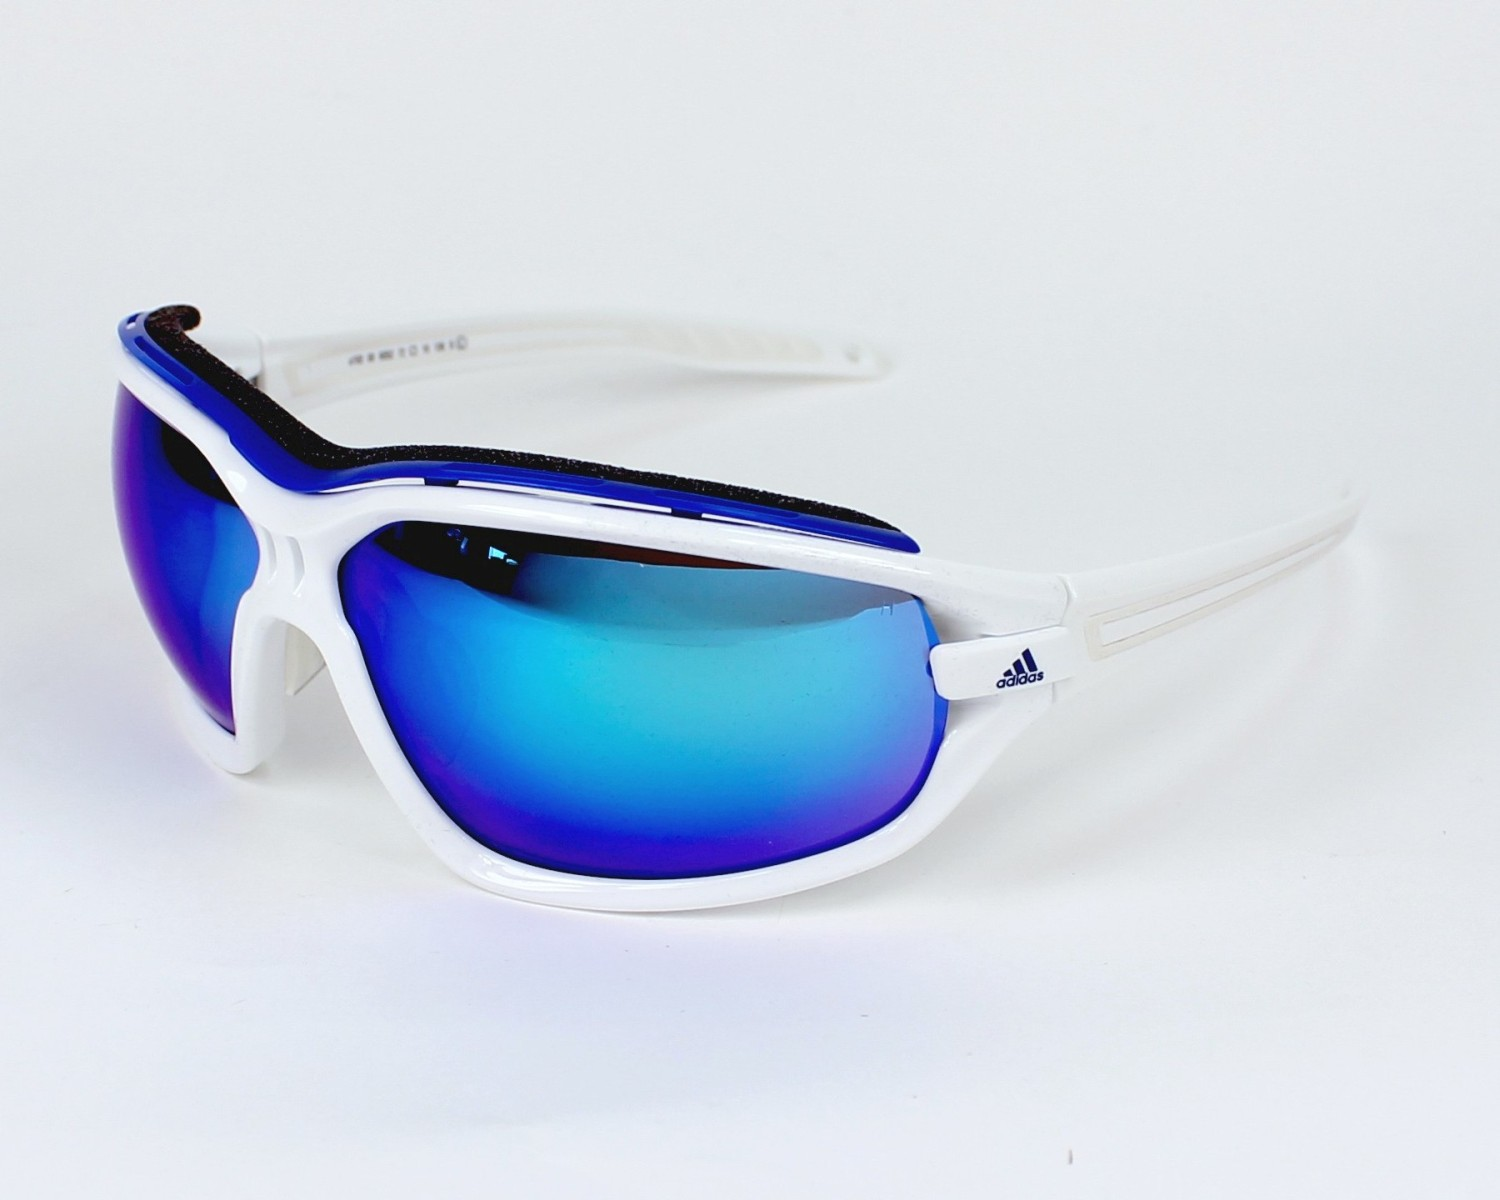 e21e06d542 Sunglasses Adidas A-193 6052 72-10 White Blue profile view